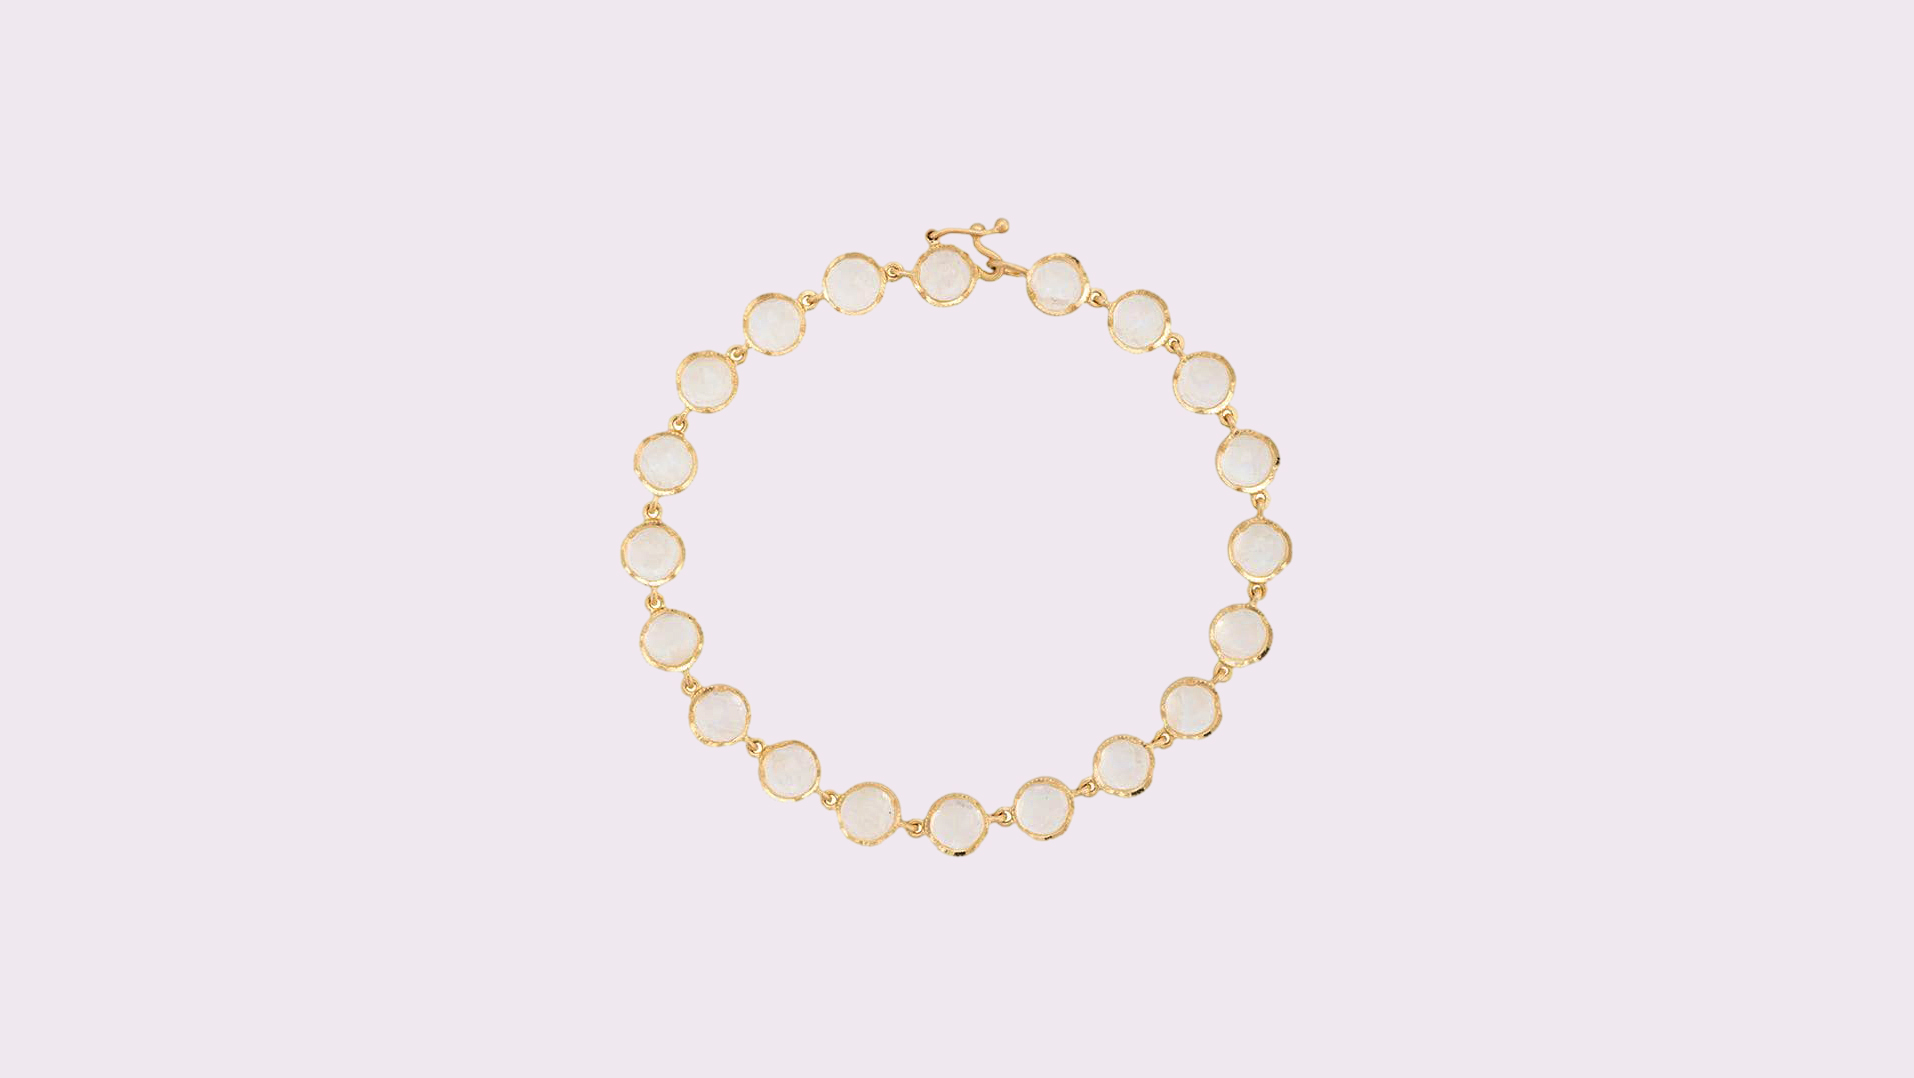 Irene Neuwirth Rainbow Moonstone and 18-karat Gold Bracelet